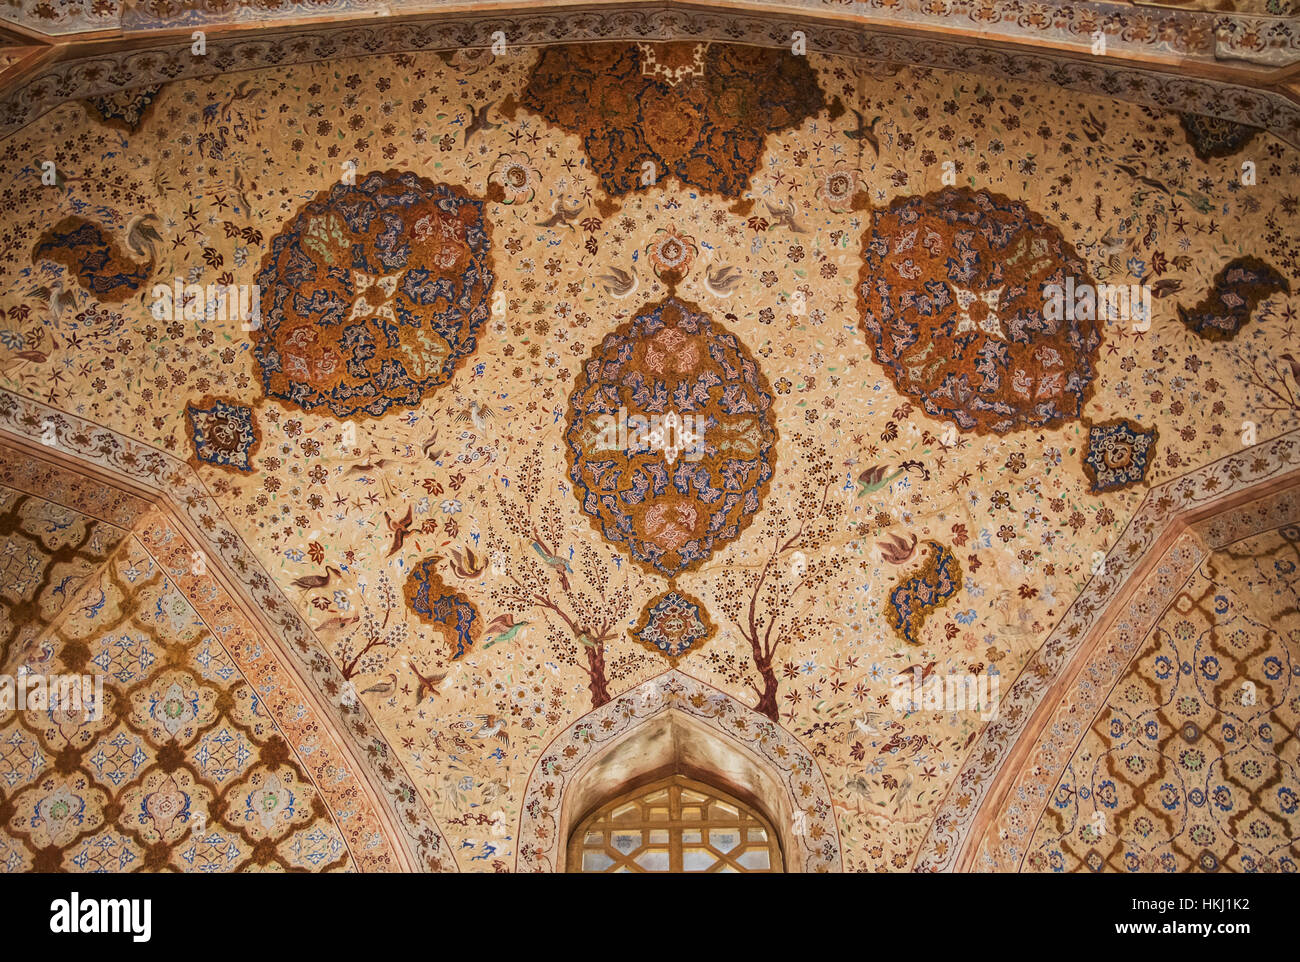 Chini-khana, panel of niches, used for shelving or decoration in the Ali Qapu Palace; Esfahan, Iran Stock Photo